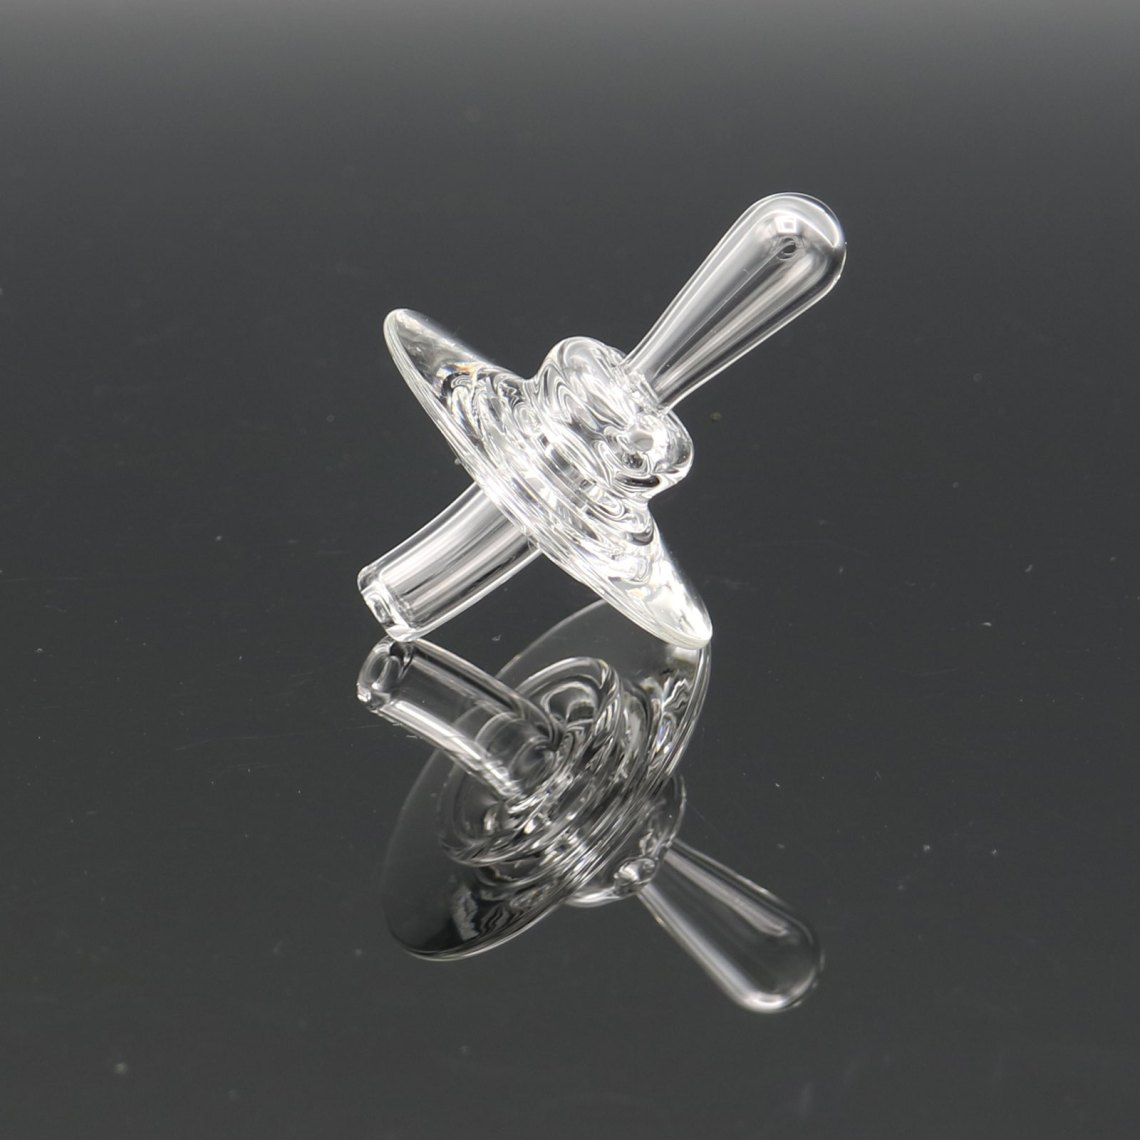 Zach Brown Glass – V2 Directional Clear Cap